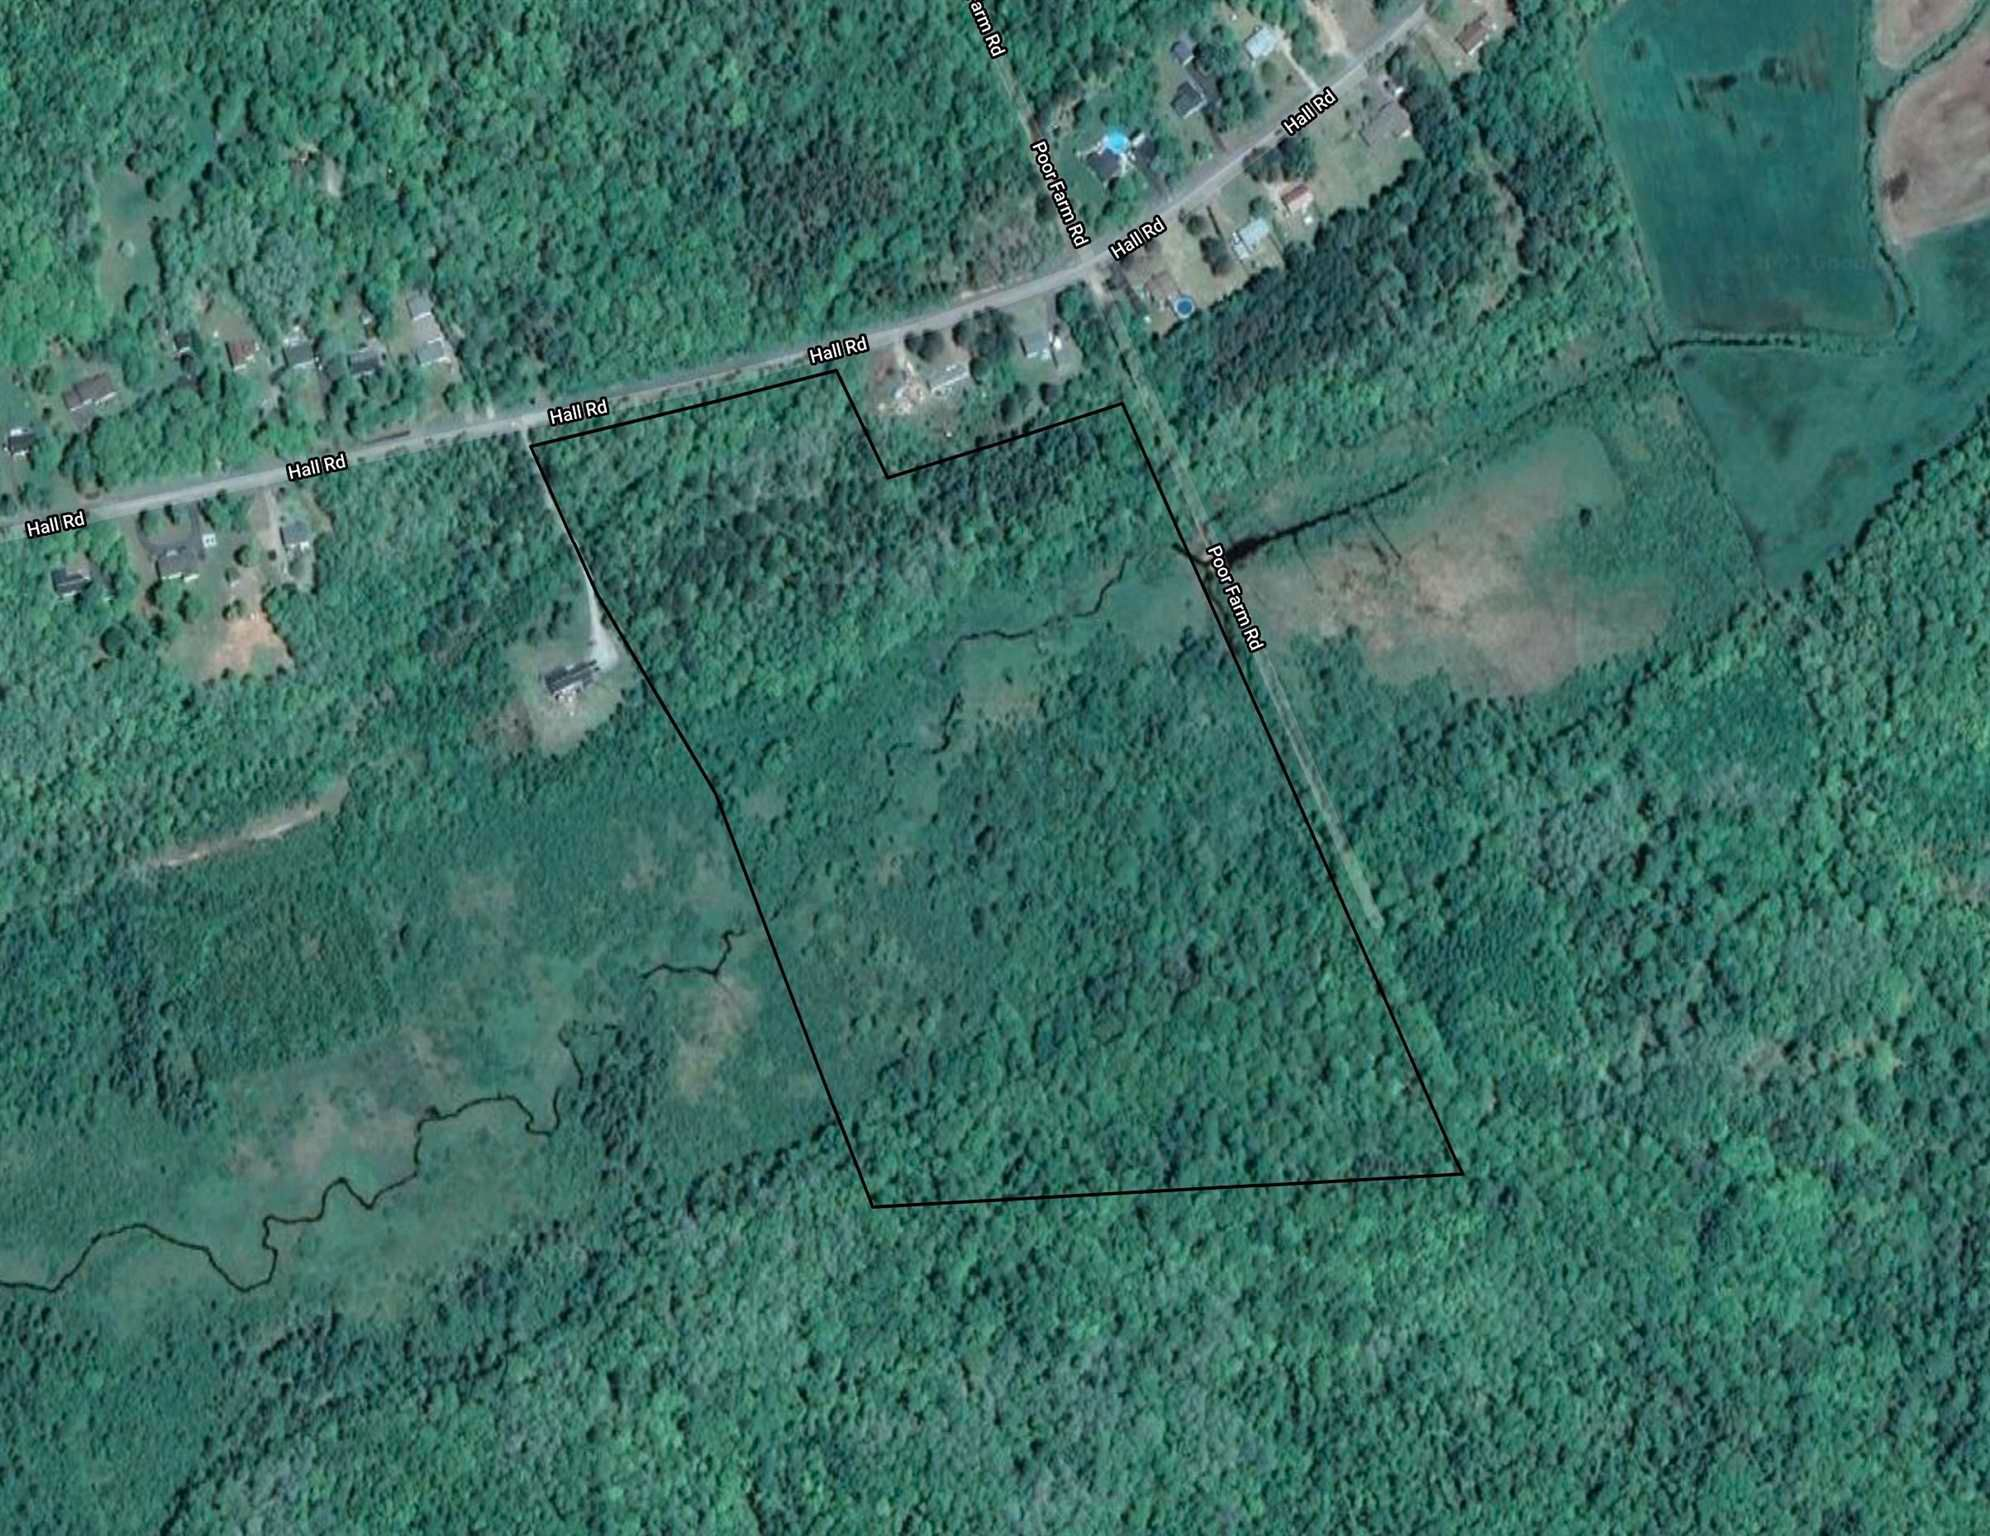 Main Photo: Lot Hall Road in South Greenwood: 404-Kings County Vacant Land for sale (Annapolis Valley)  : MLS®# 202110363